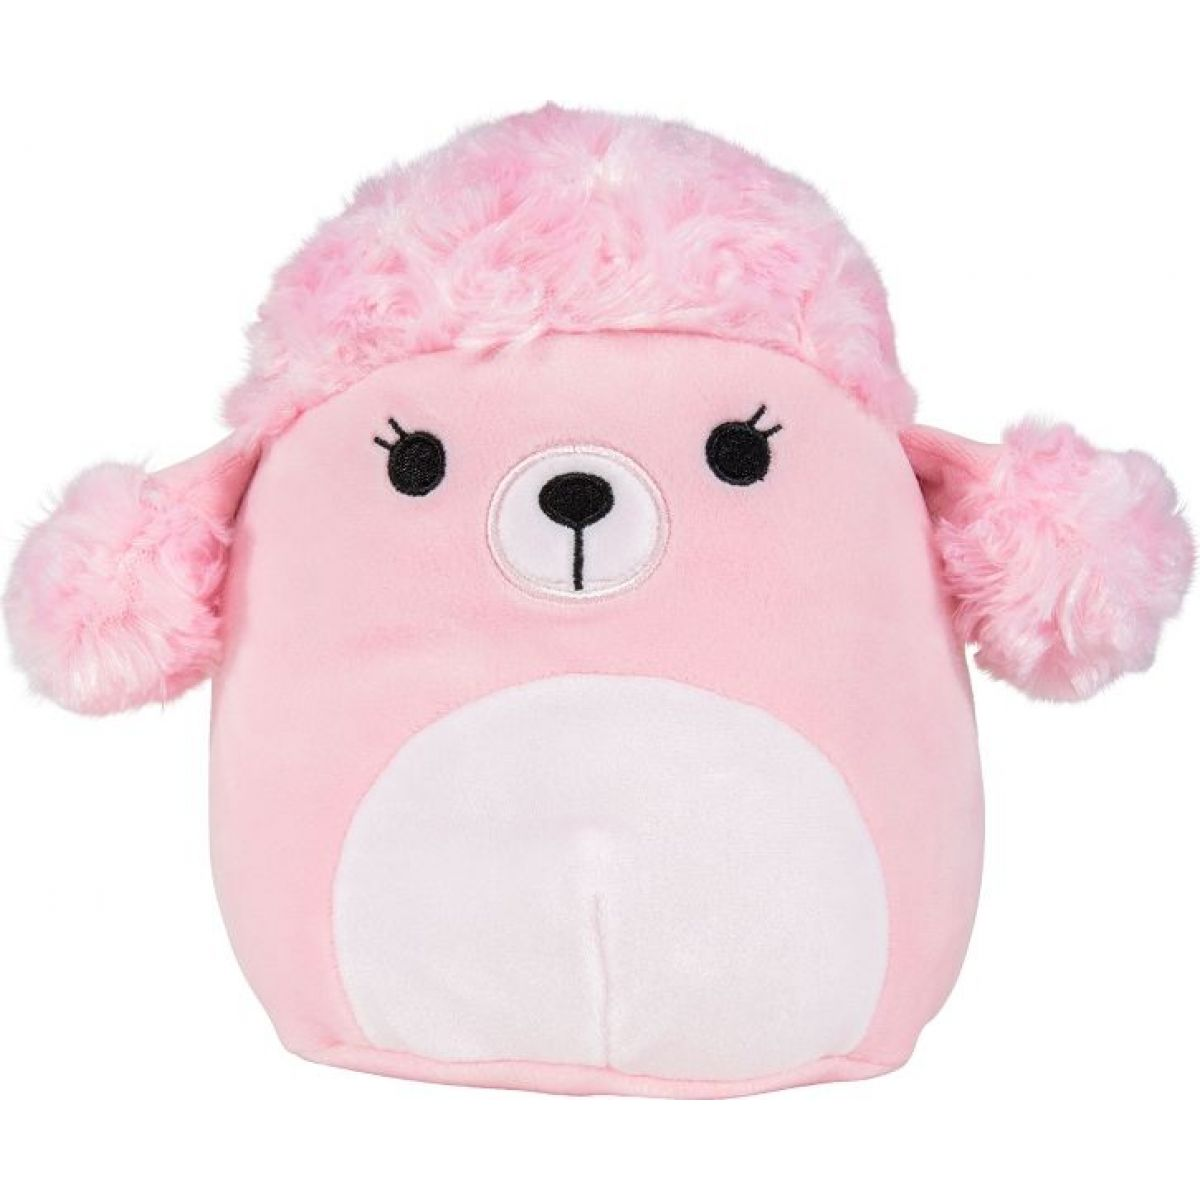 Squishmallows Pudlice Chloe